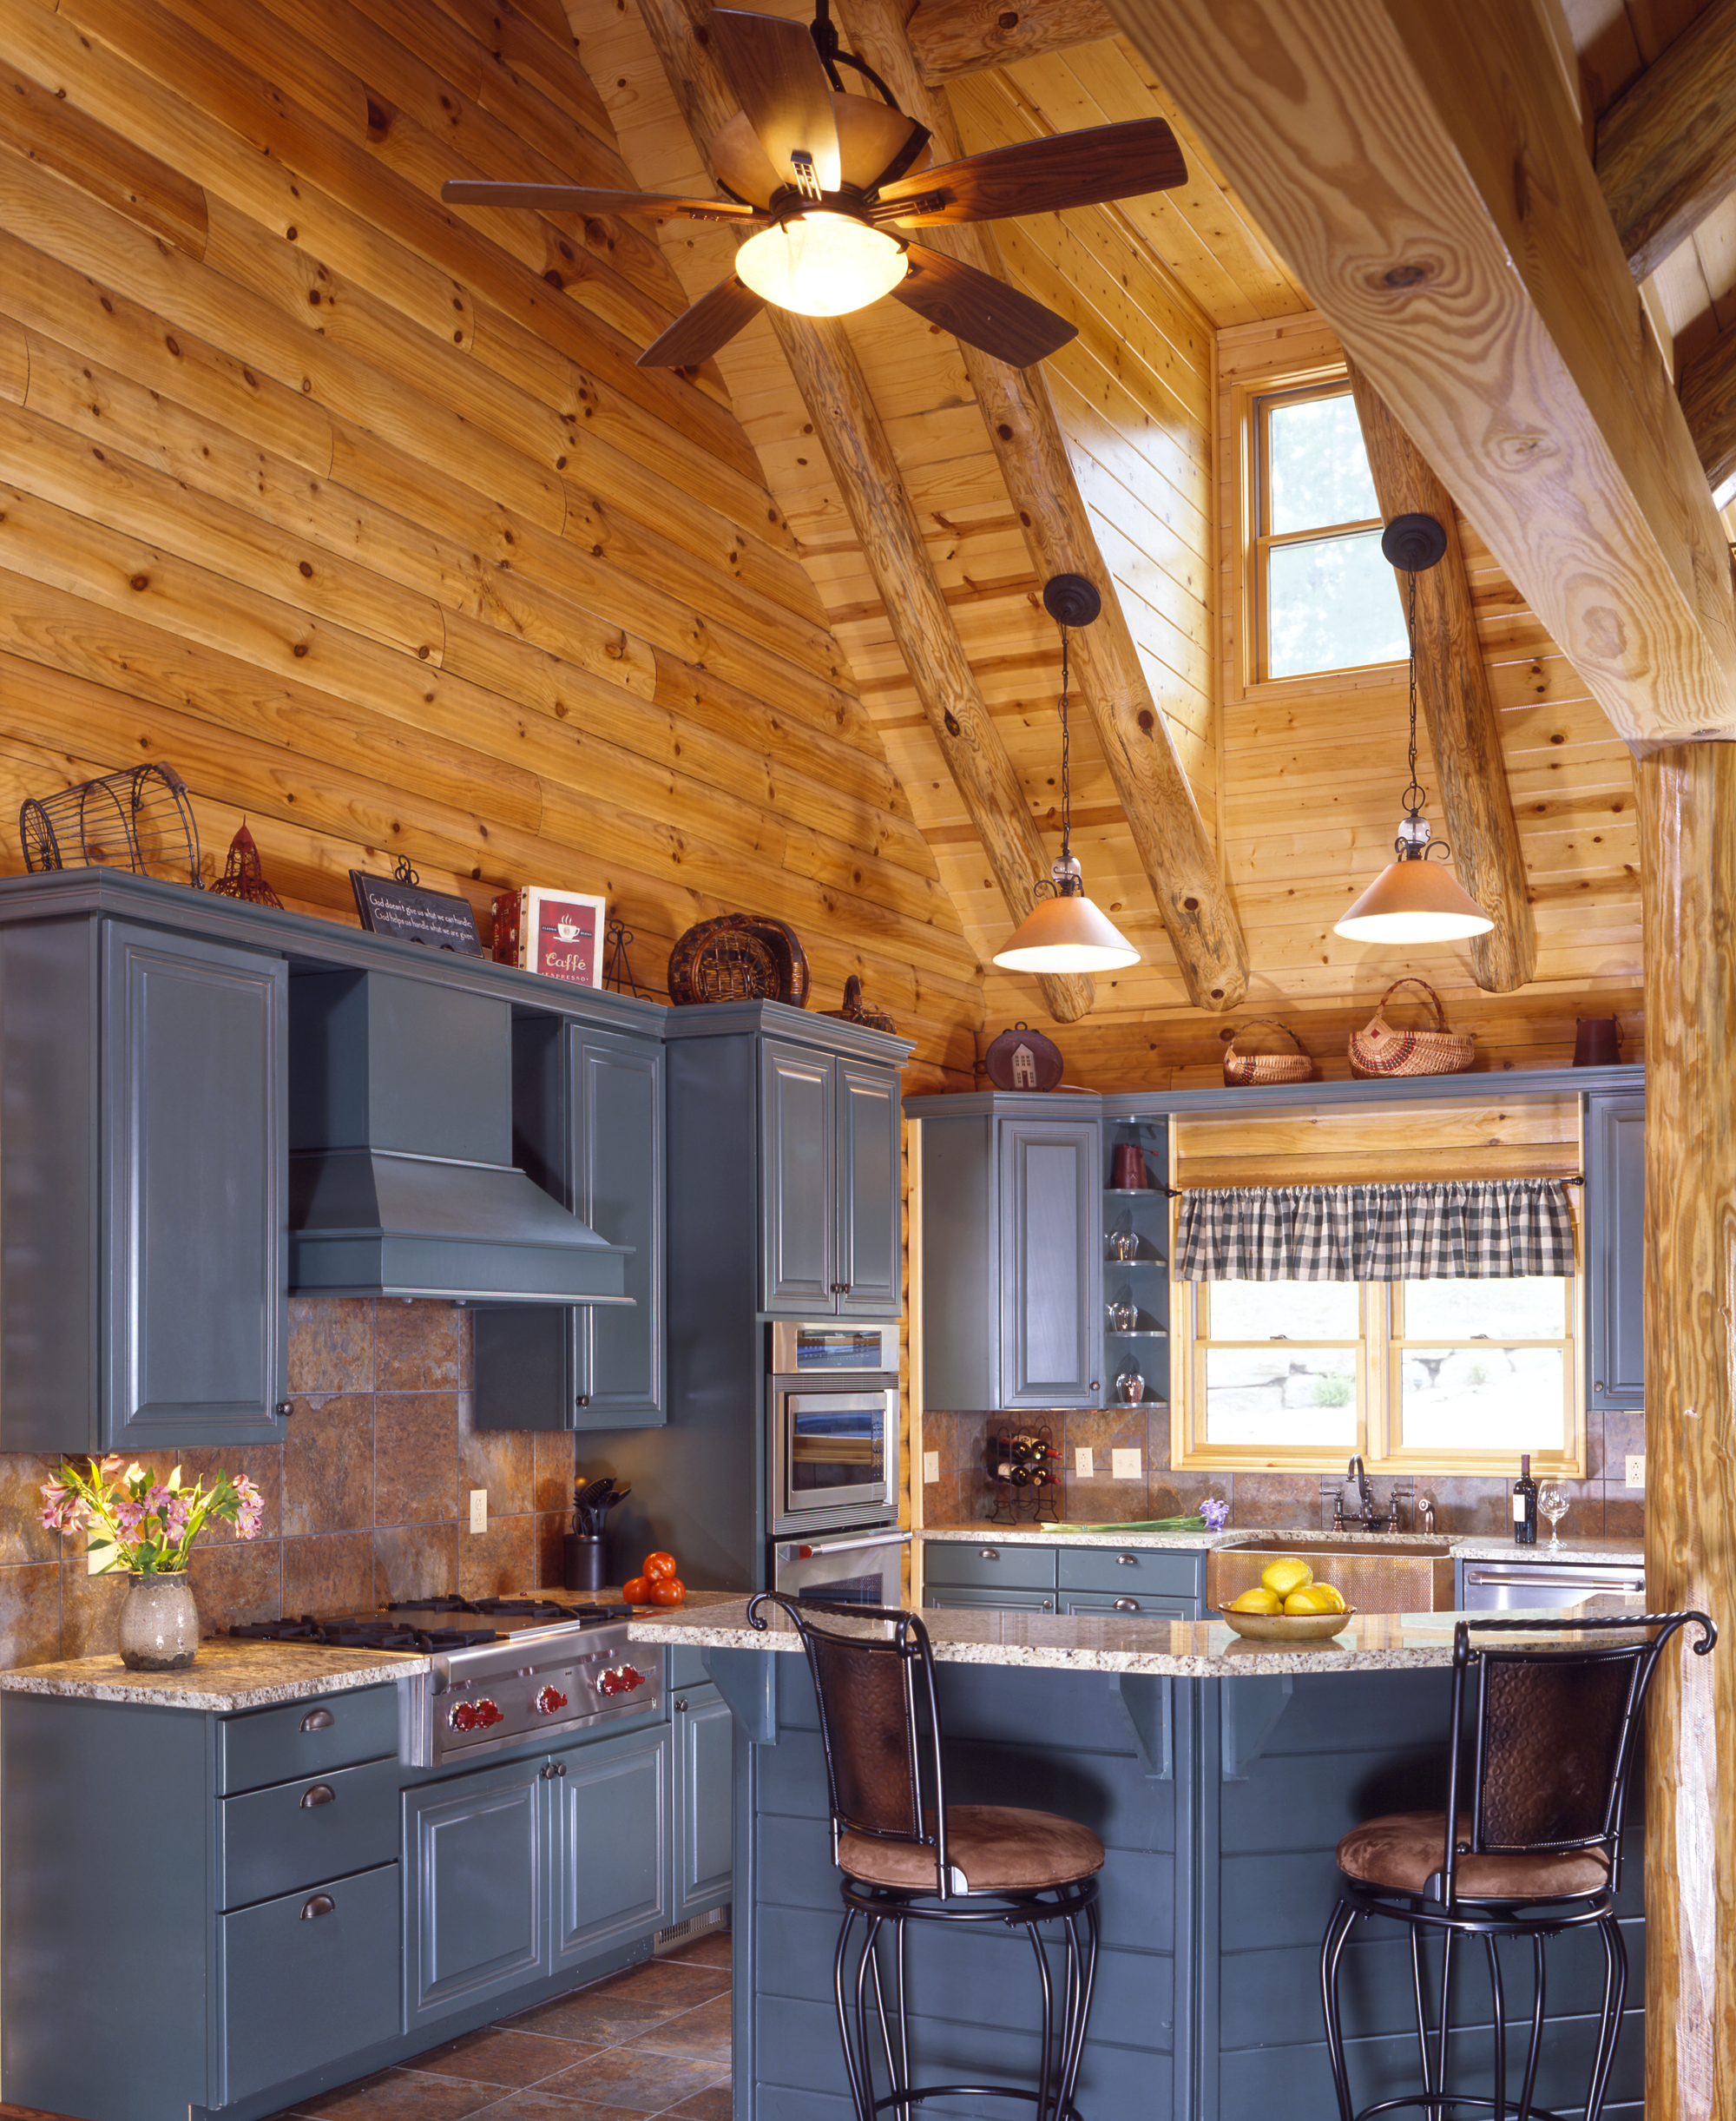 Log Home Kitchen Layout: The Work Triangle and Beyond | Real Log Homes